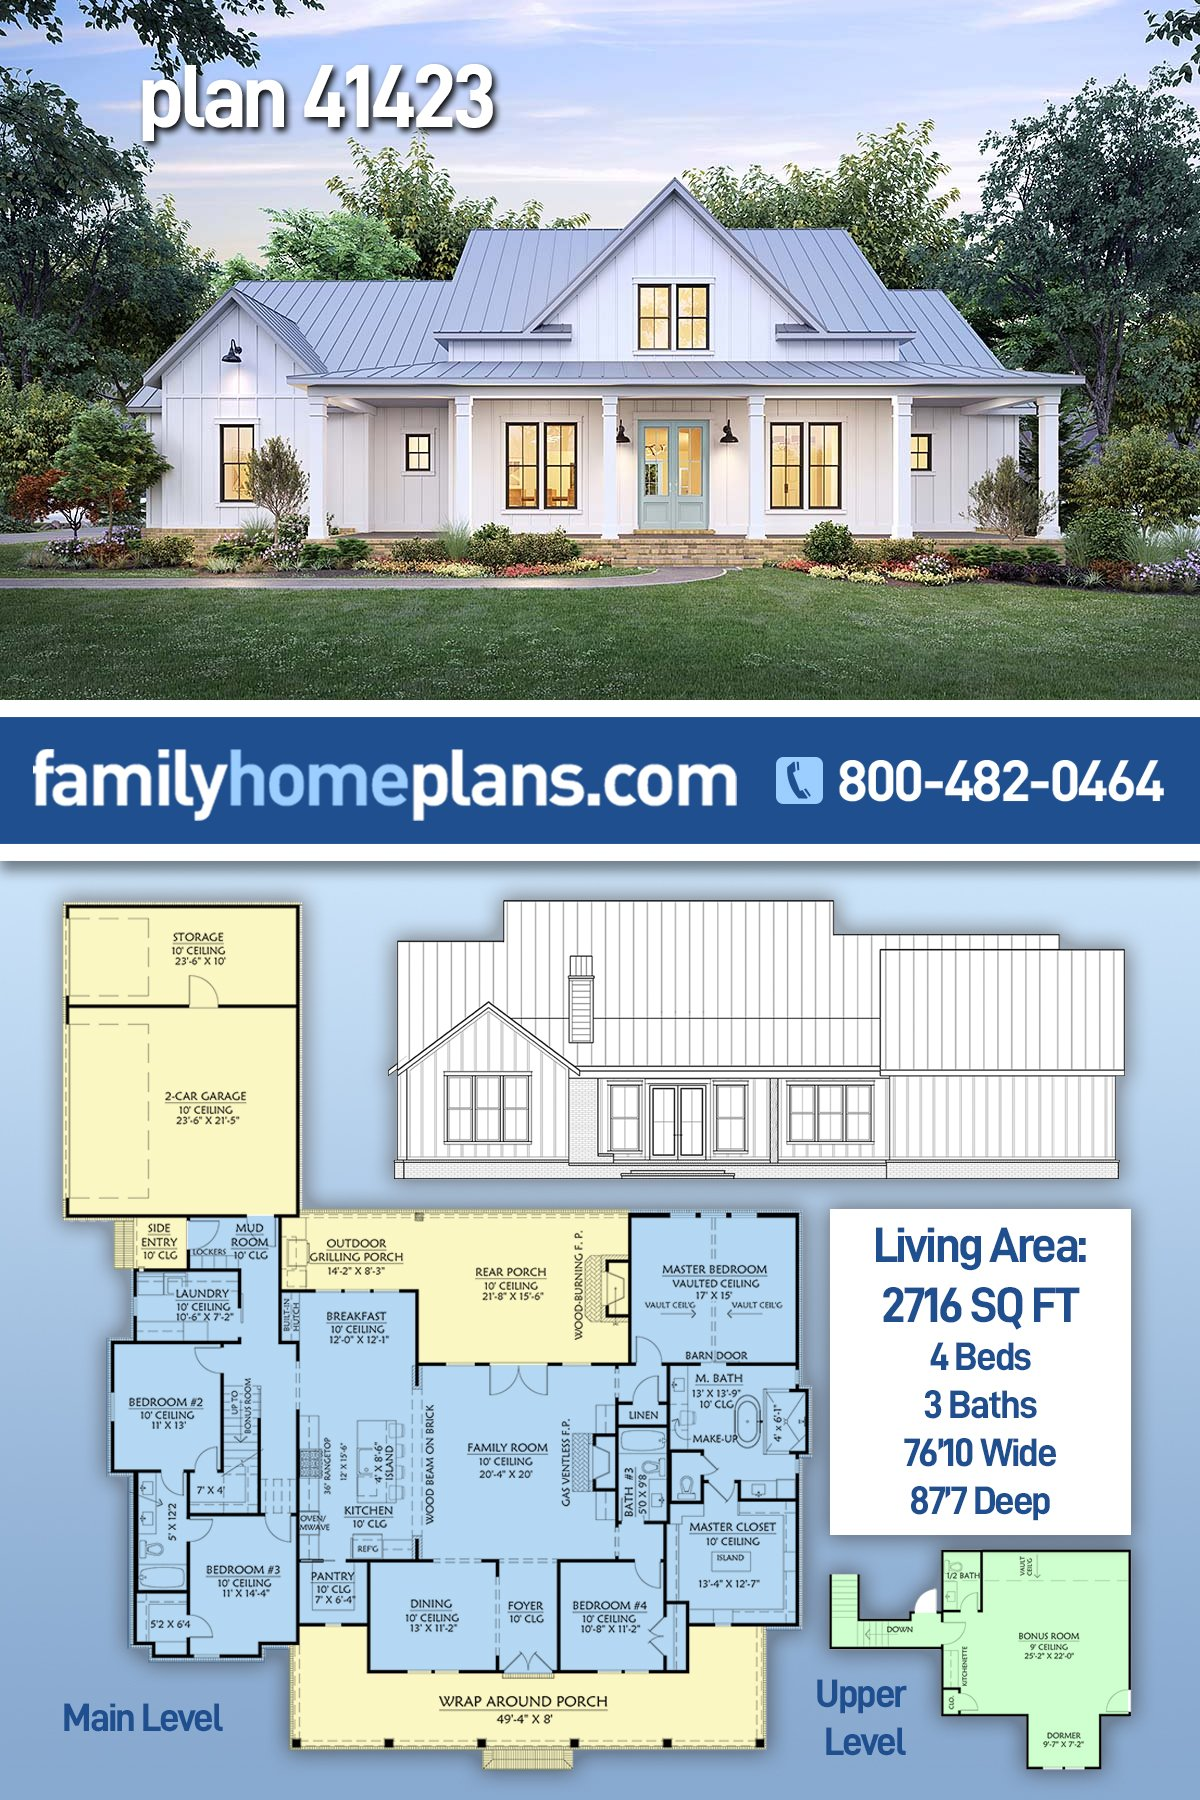 Country, Farmhouse House Plan 41423 with 4 Beds, 3 Baths, 2 Car Garage